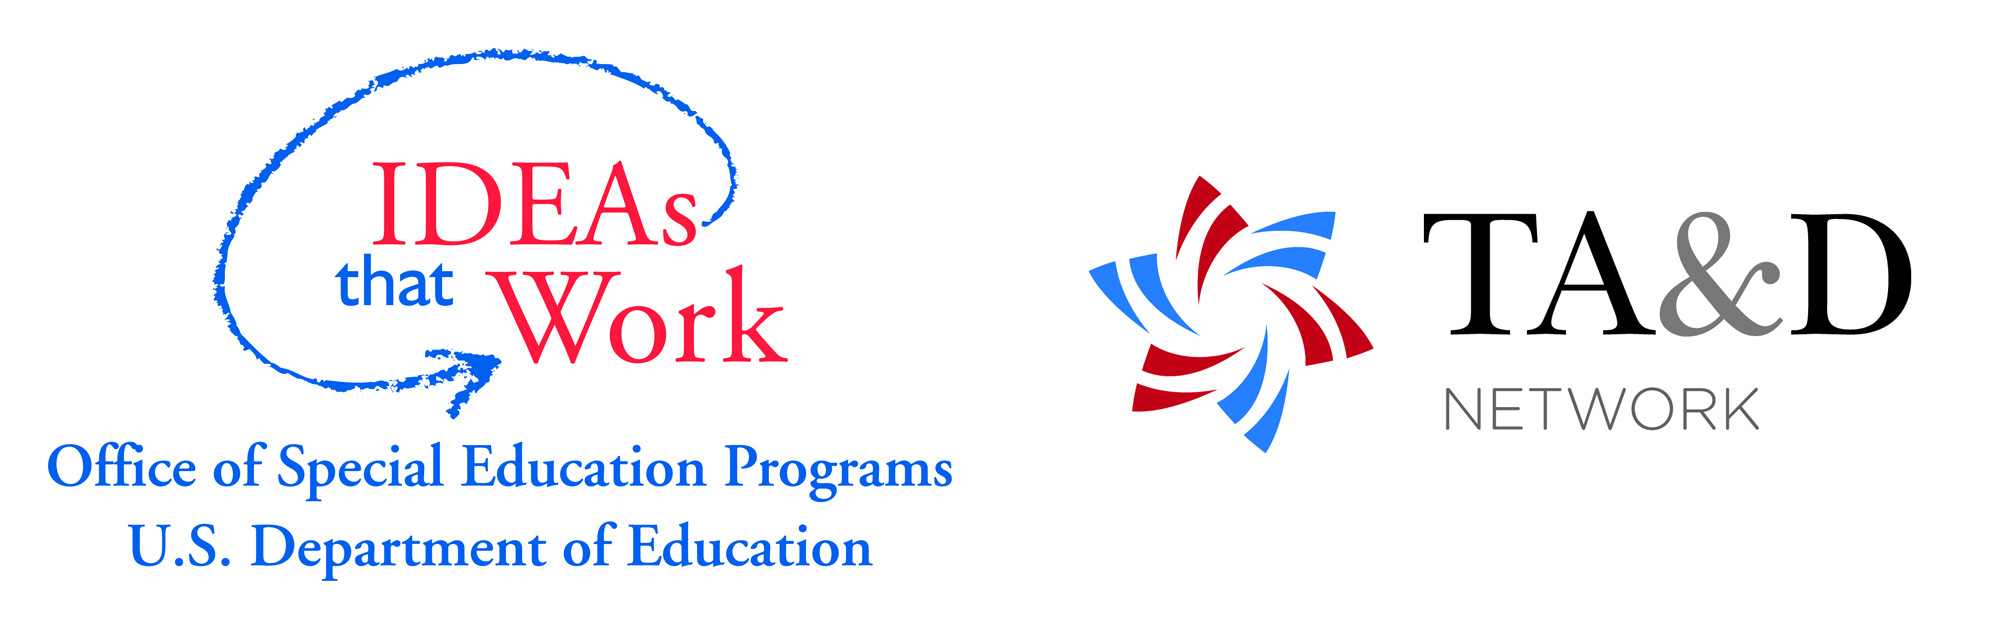 Logos - IDEAs that Work Office of Special Education Programs U.S. Department of Education TA&D Network